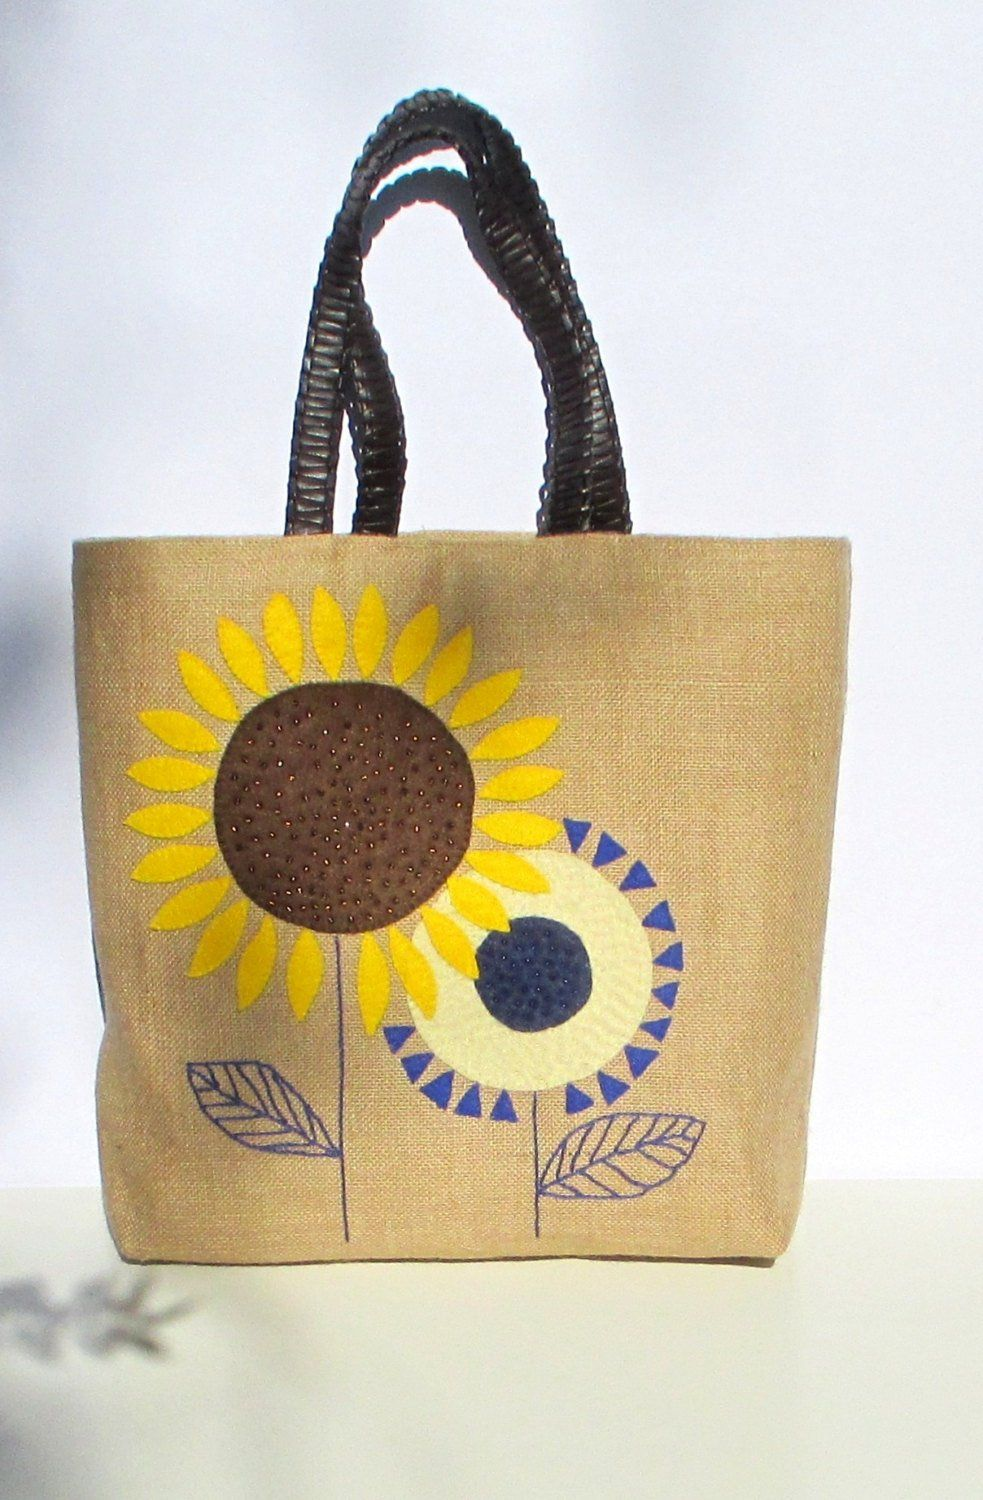 Download Sunflowers Helianthus Summer Jute Bag Handmade Tote Hand Etsy Summer Tote Bags Jute Bags Jute Tote Bags